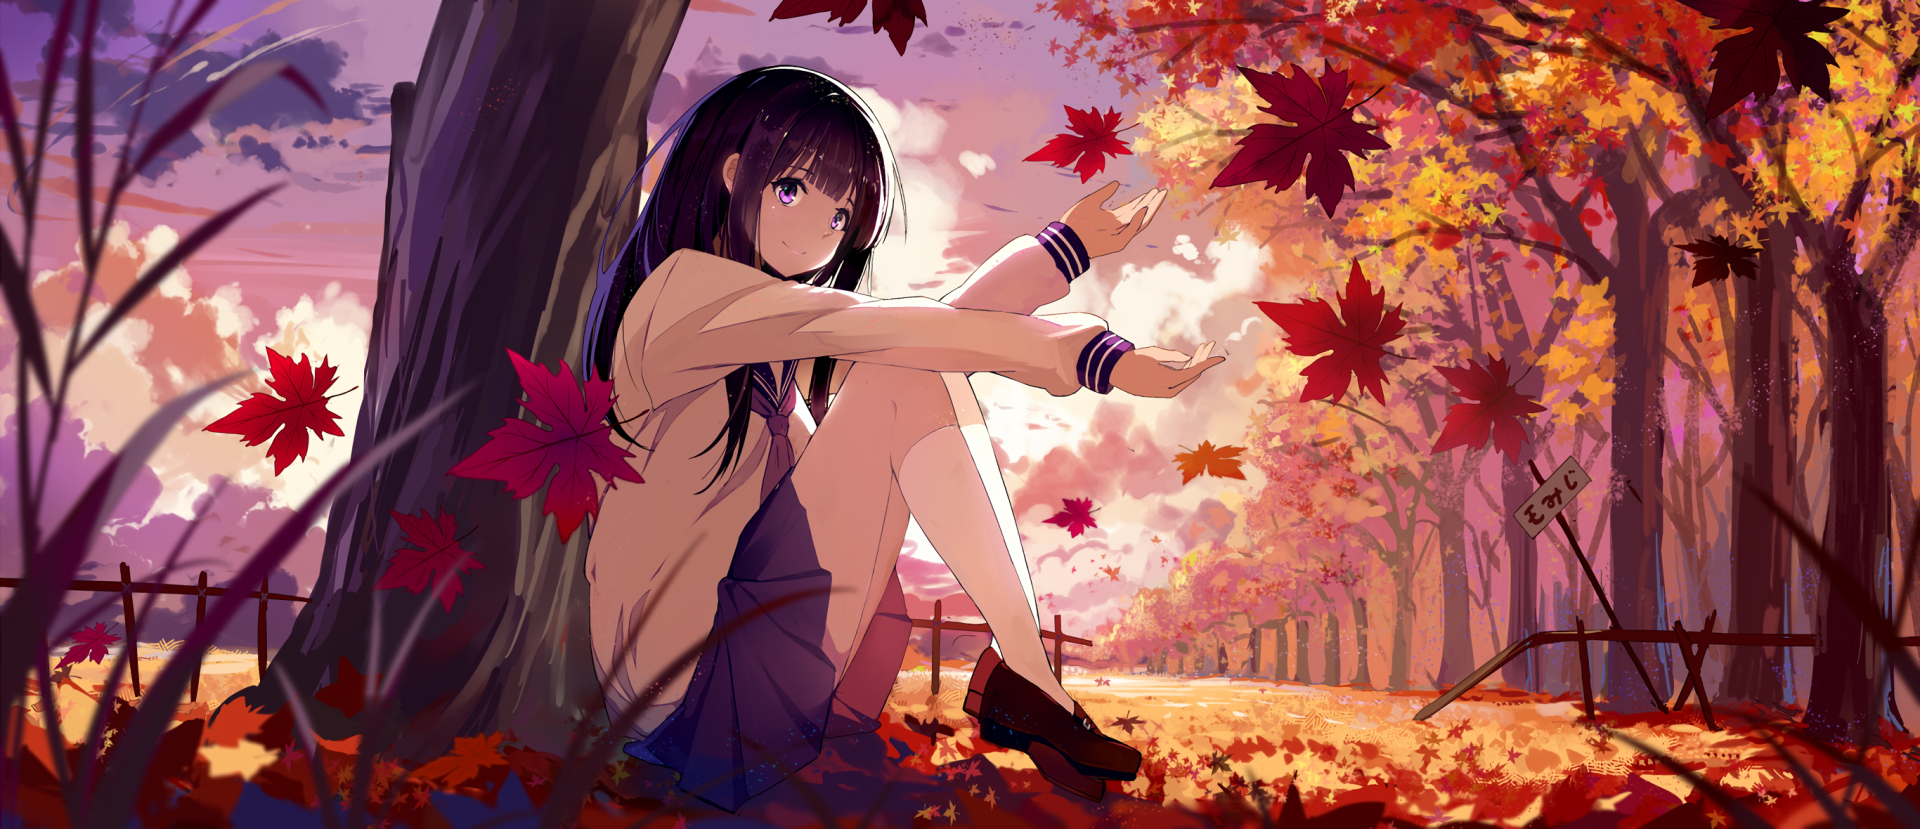 Wallpapers ID:693922